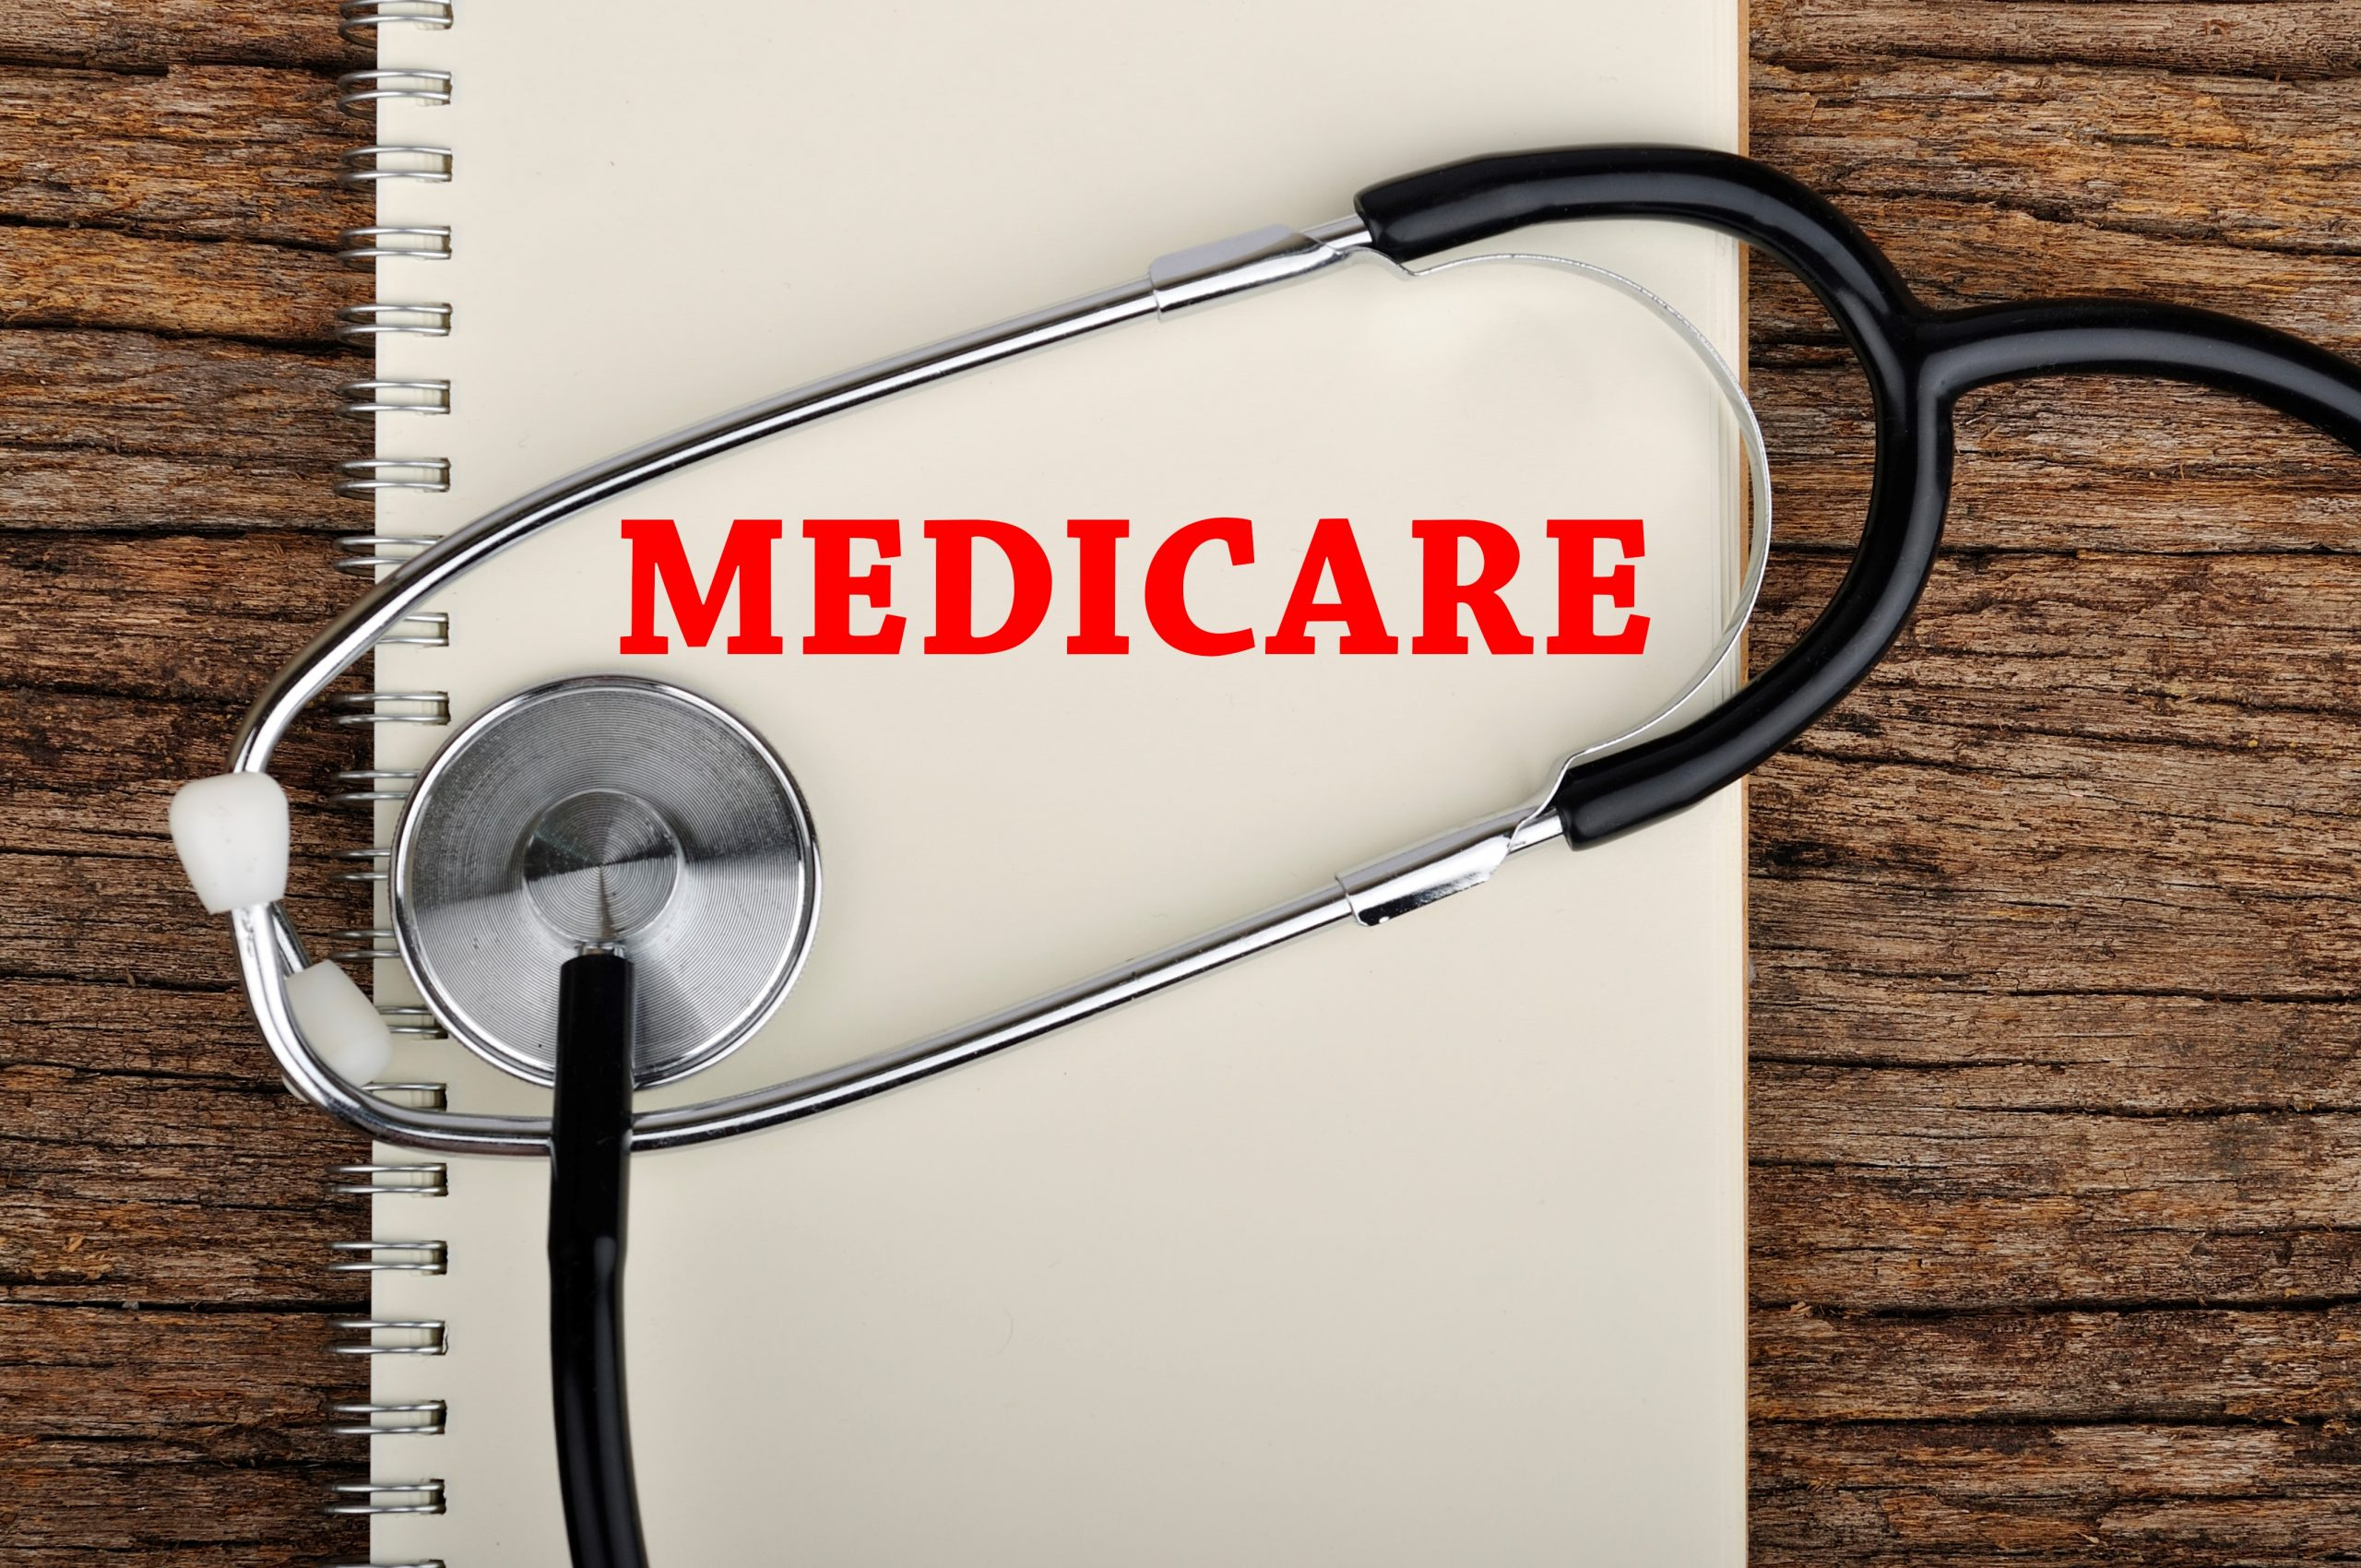 Medicare Open Enrollment Begins Oct. 15th. What Does That Mean for Me?